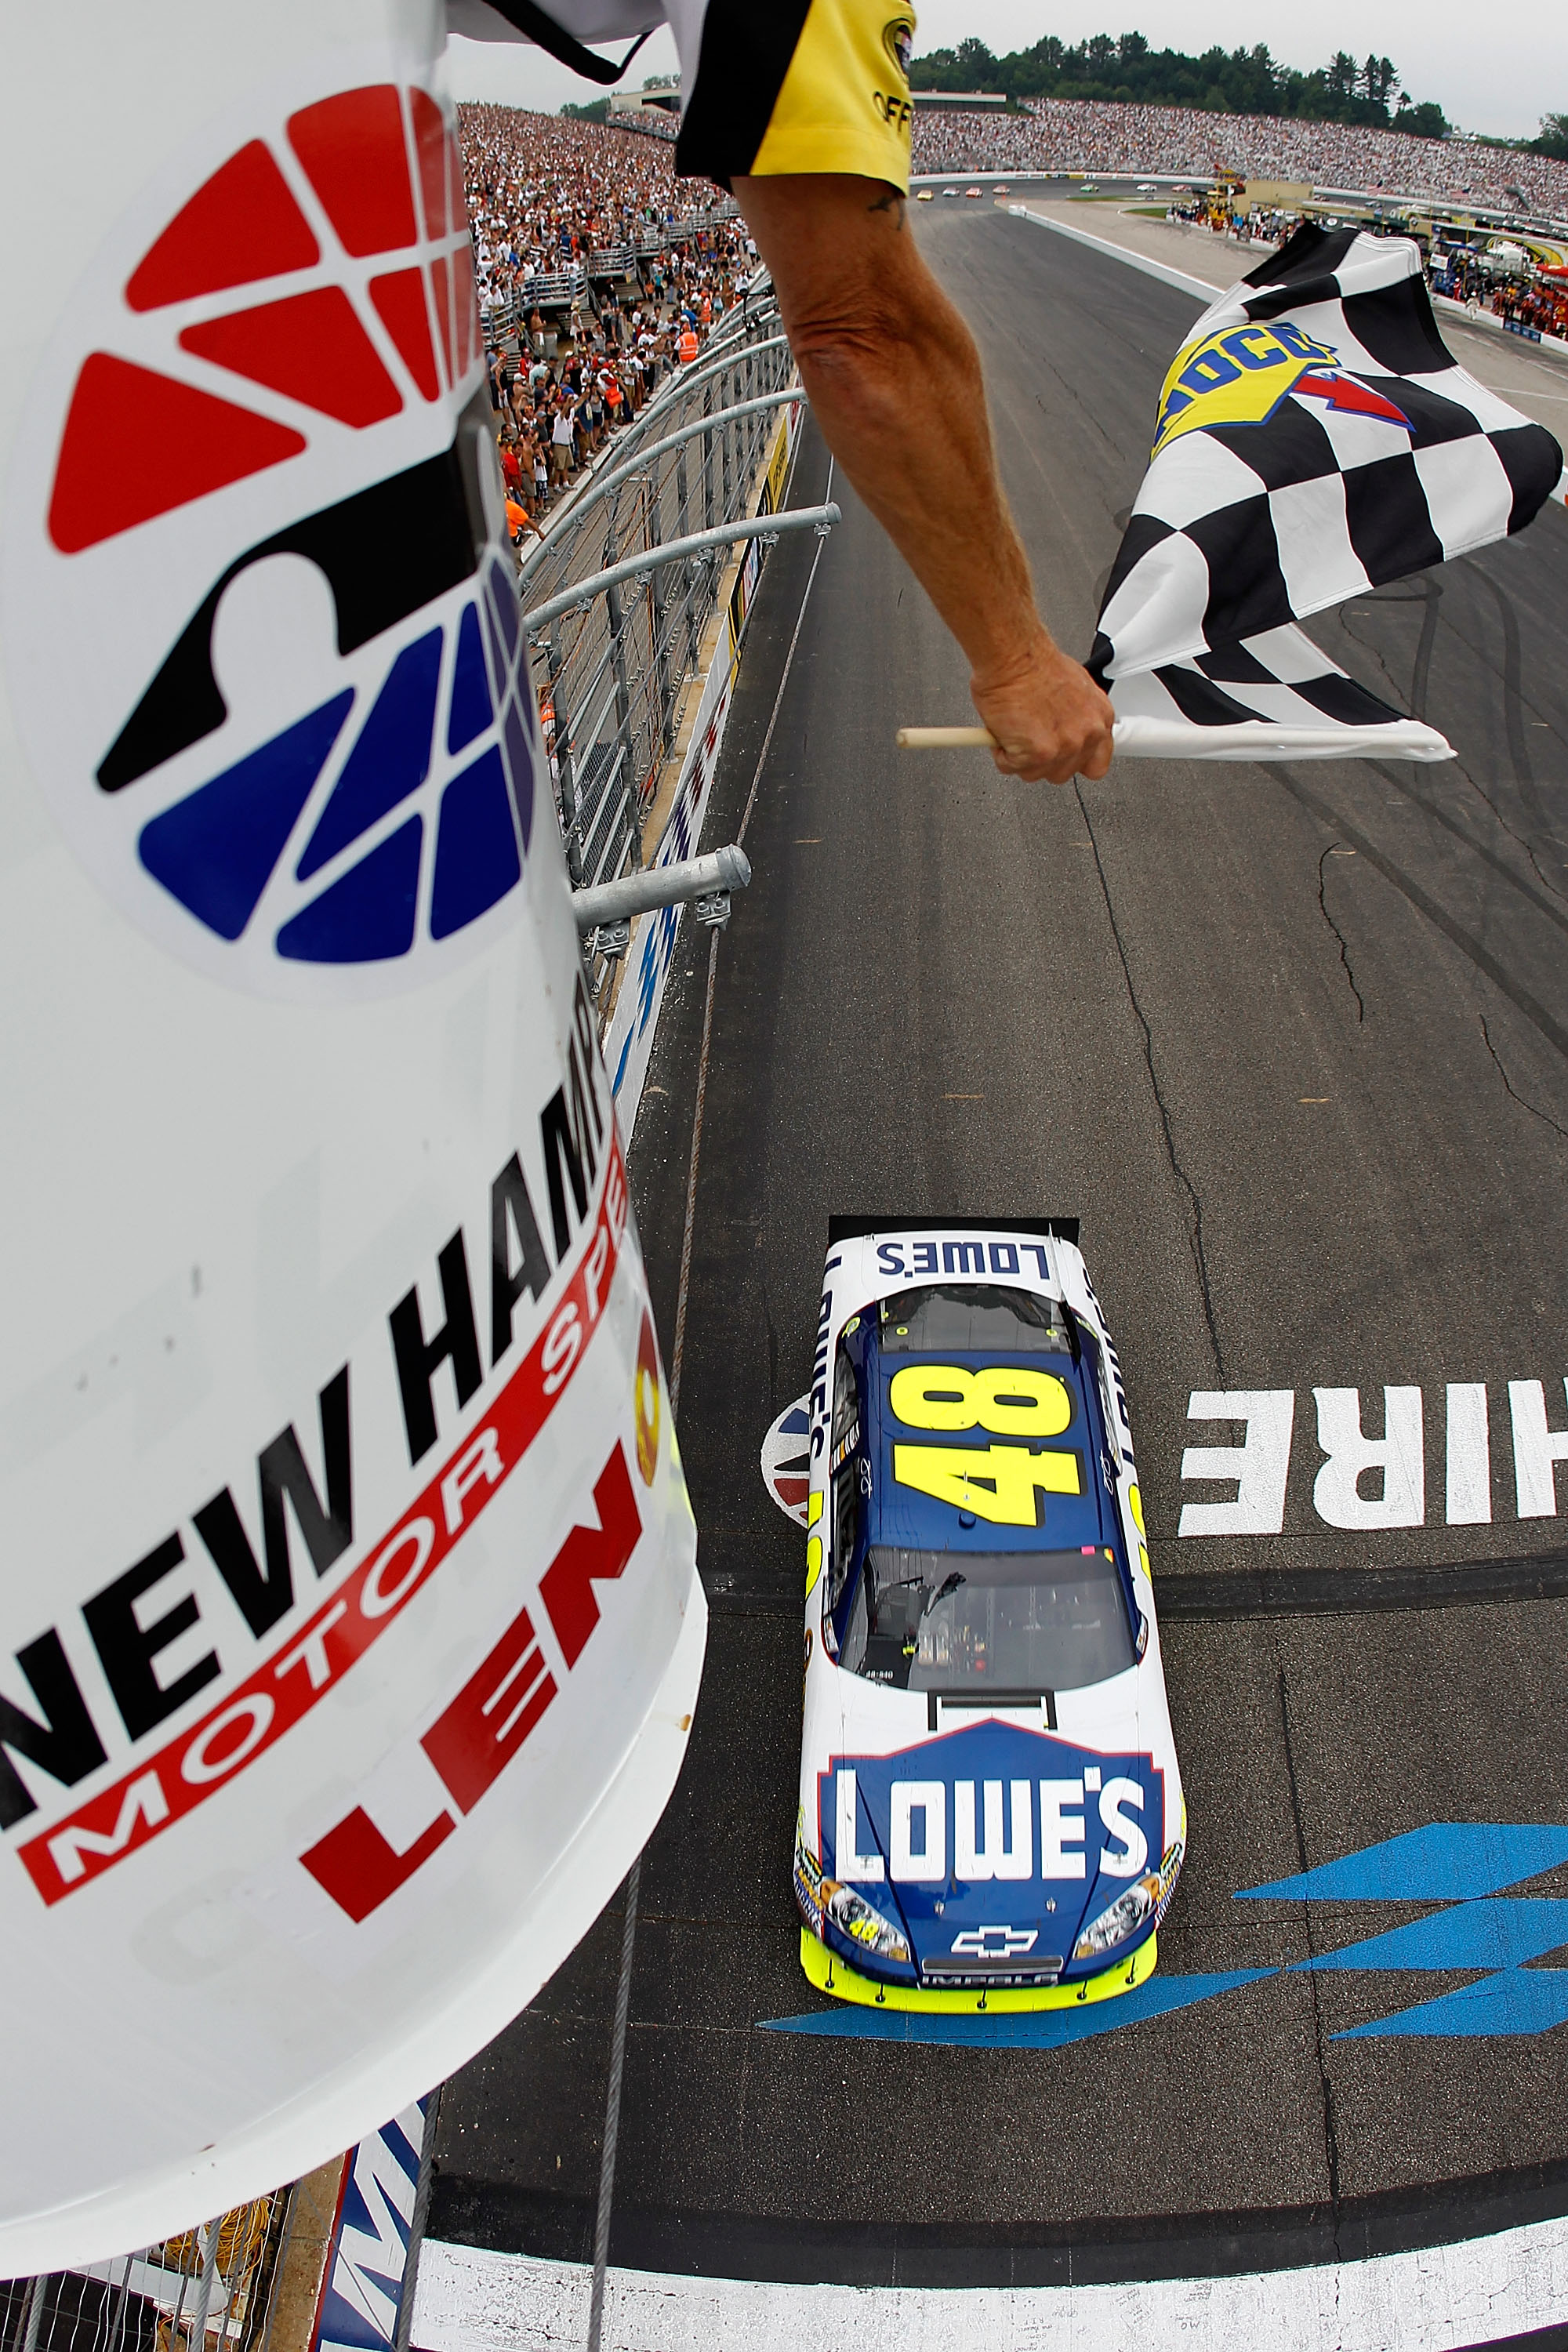 LOUDON, NH - JUNE 27:  Jimmie Johnson, driver of the #48 Lowe's Chevrolet, takes the checkered flag to win the NASCAR Sprint Cup Series LENOX Industrial Tools 301 at New Hampshire Motor Speedway on June 27, 2010 in Loudon, New Hampshire.  (Photo by Todd W